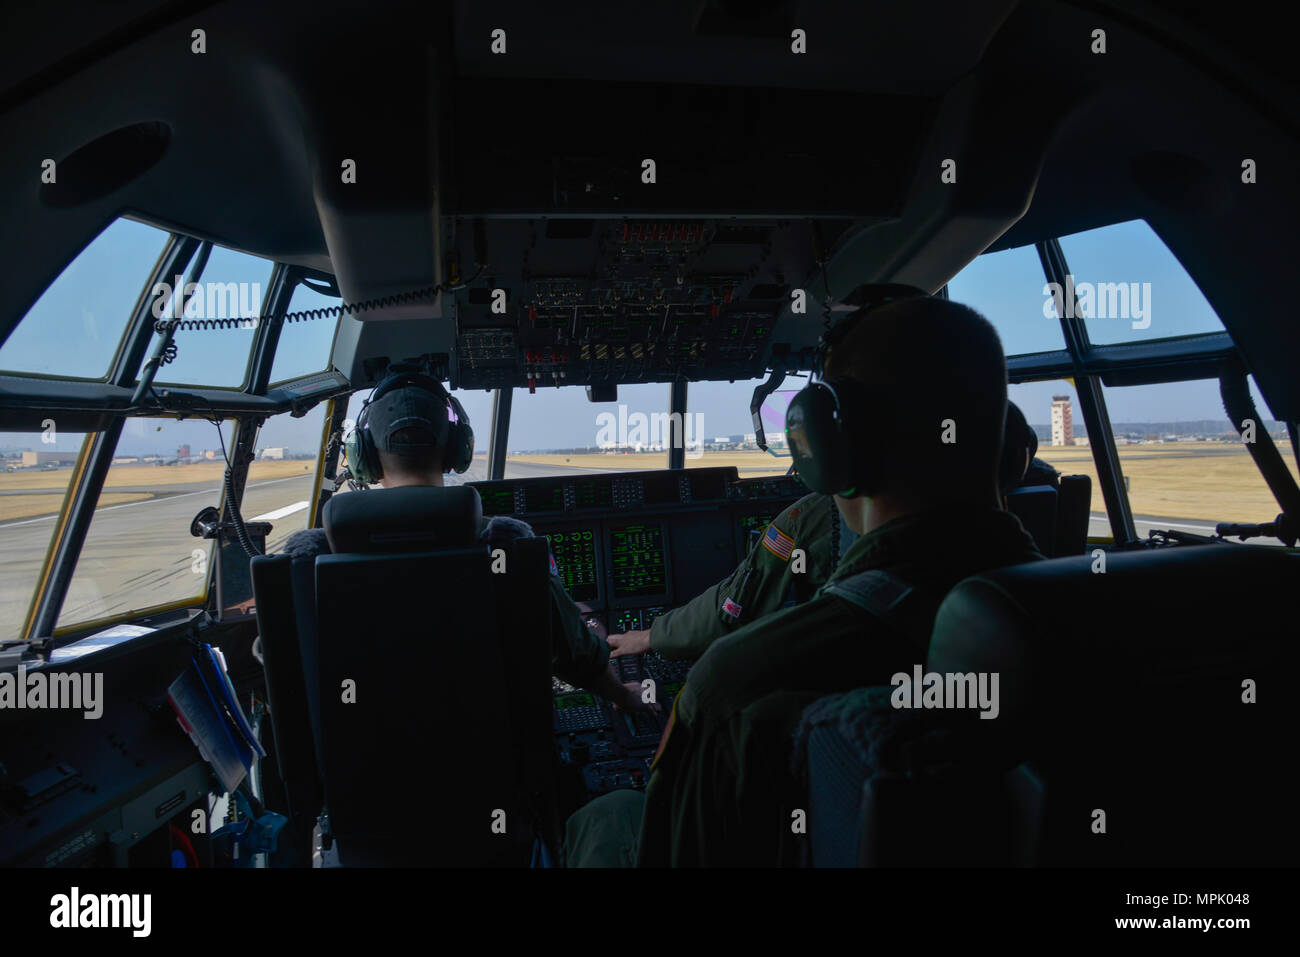 Crew members of the 36th Airlift Squadron prepare to take off during the first C-130J Super Hercules training sortie at Yokota Air Base, Japan, March 20, 2017. The C-130J incorporates state-of-the-art technology to reduce manpower requirements, lower operating and support costs, and provide life-cycle cost savings over earlier C-130 models. (U.S. Air Force photo by Staff Sgt. David Owsianka) - Stock Image